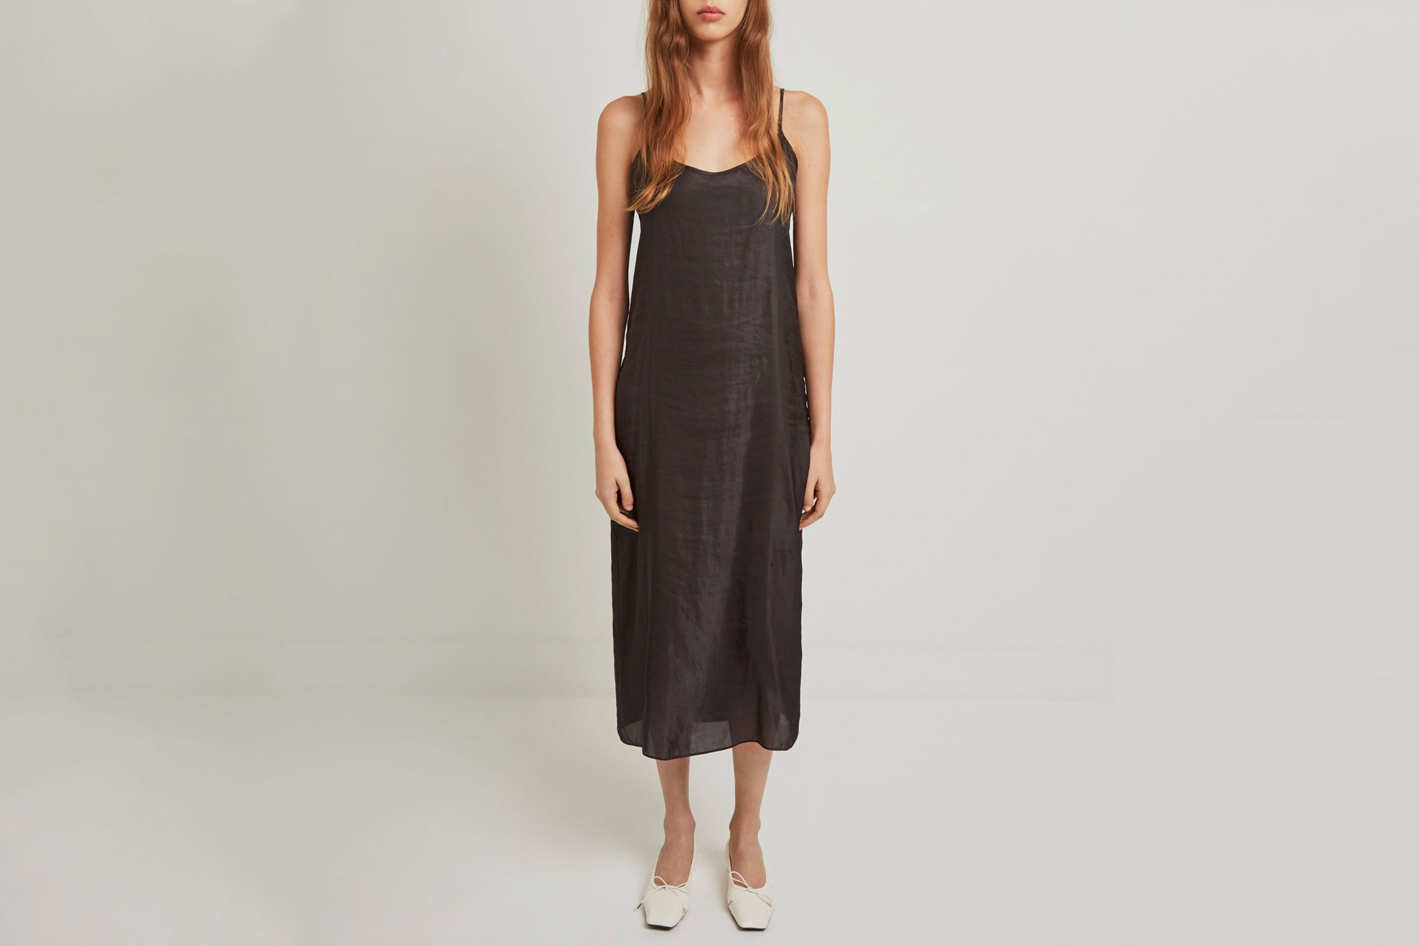 La Garçonne Moderne Portrait Long Slip Dress